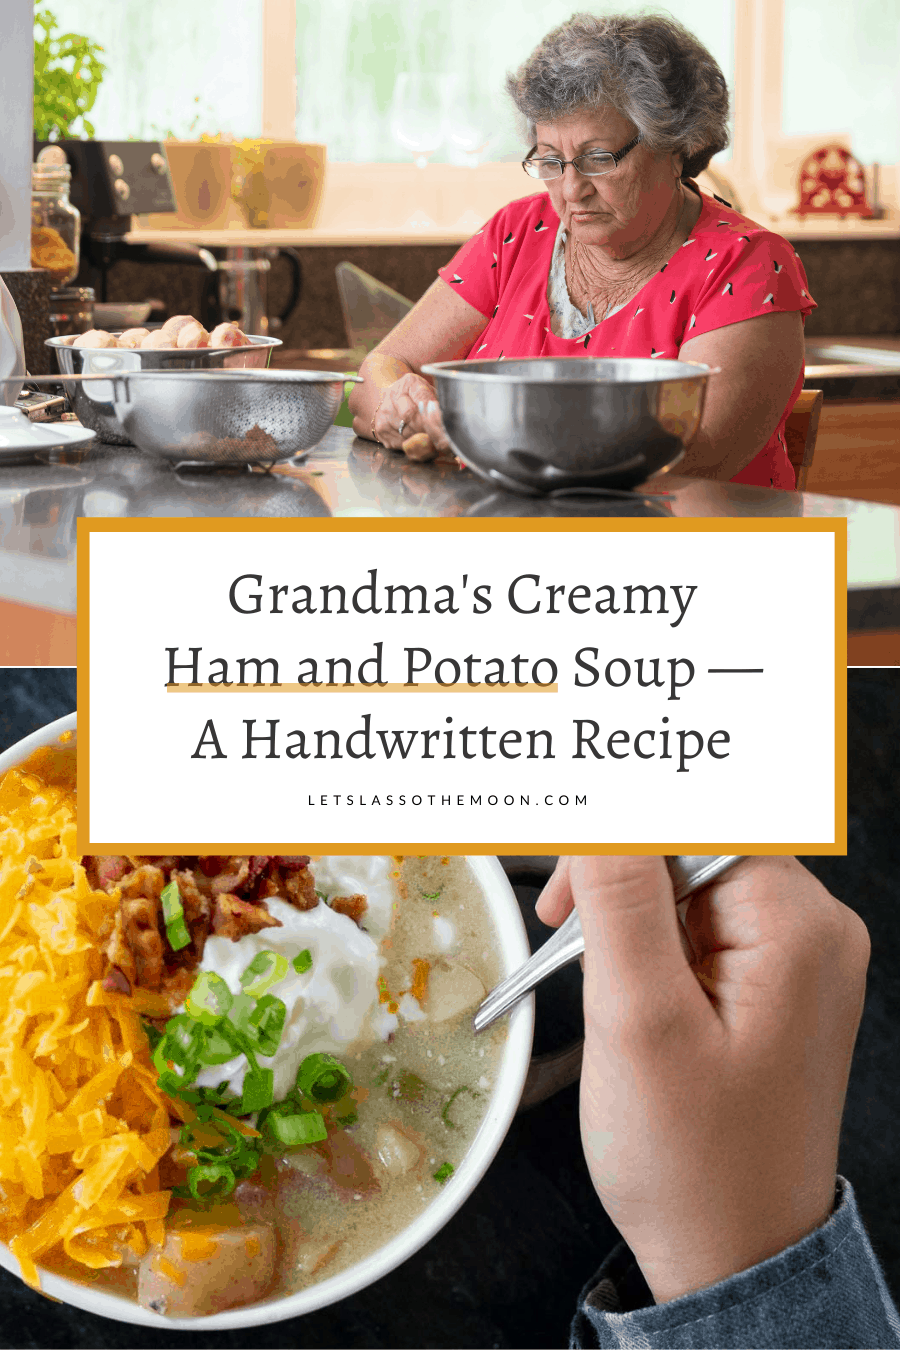 """A collage with Grandma working in the kitchen peeling potatoes and a bowl of creamy ham and potato soup with a headline overtop reading, """"Grandma's Creamy Ham and Potato Soup."""""""